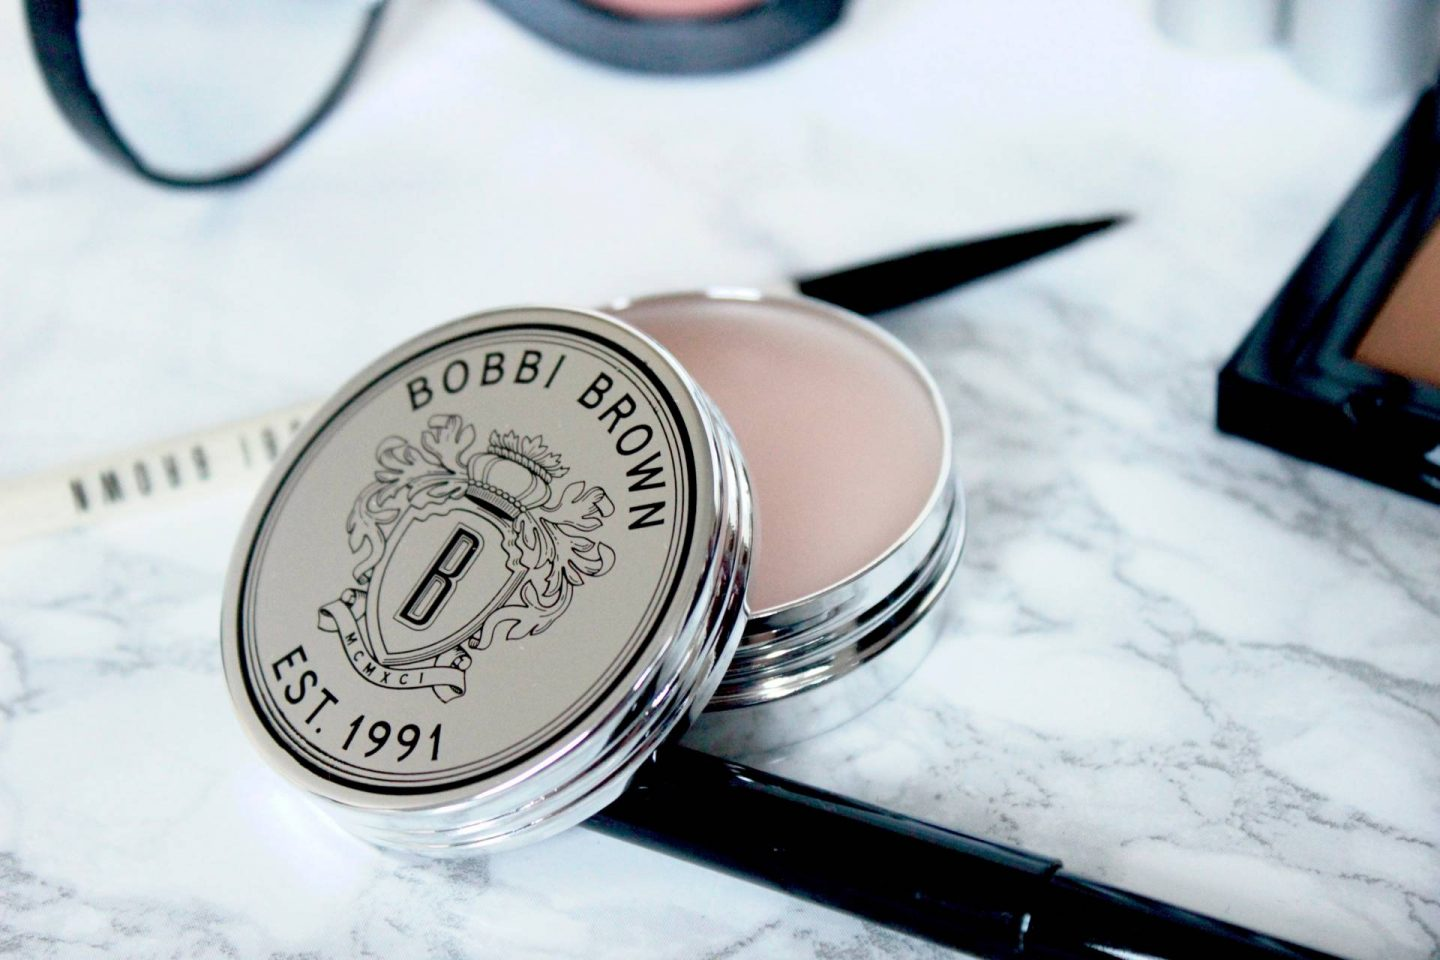 Bobbi Brown Lip Balm SPF 15